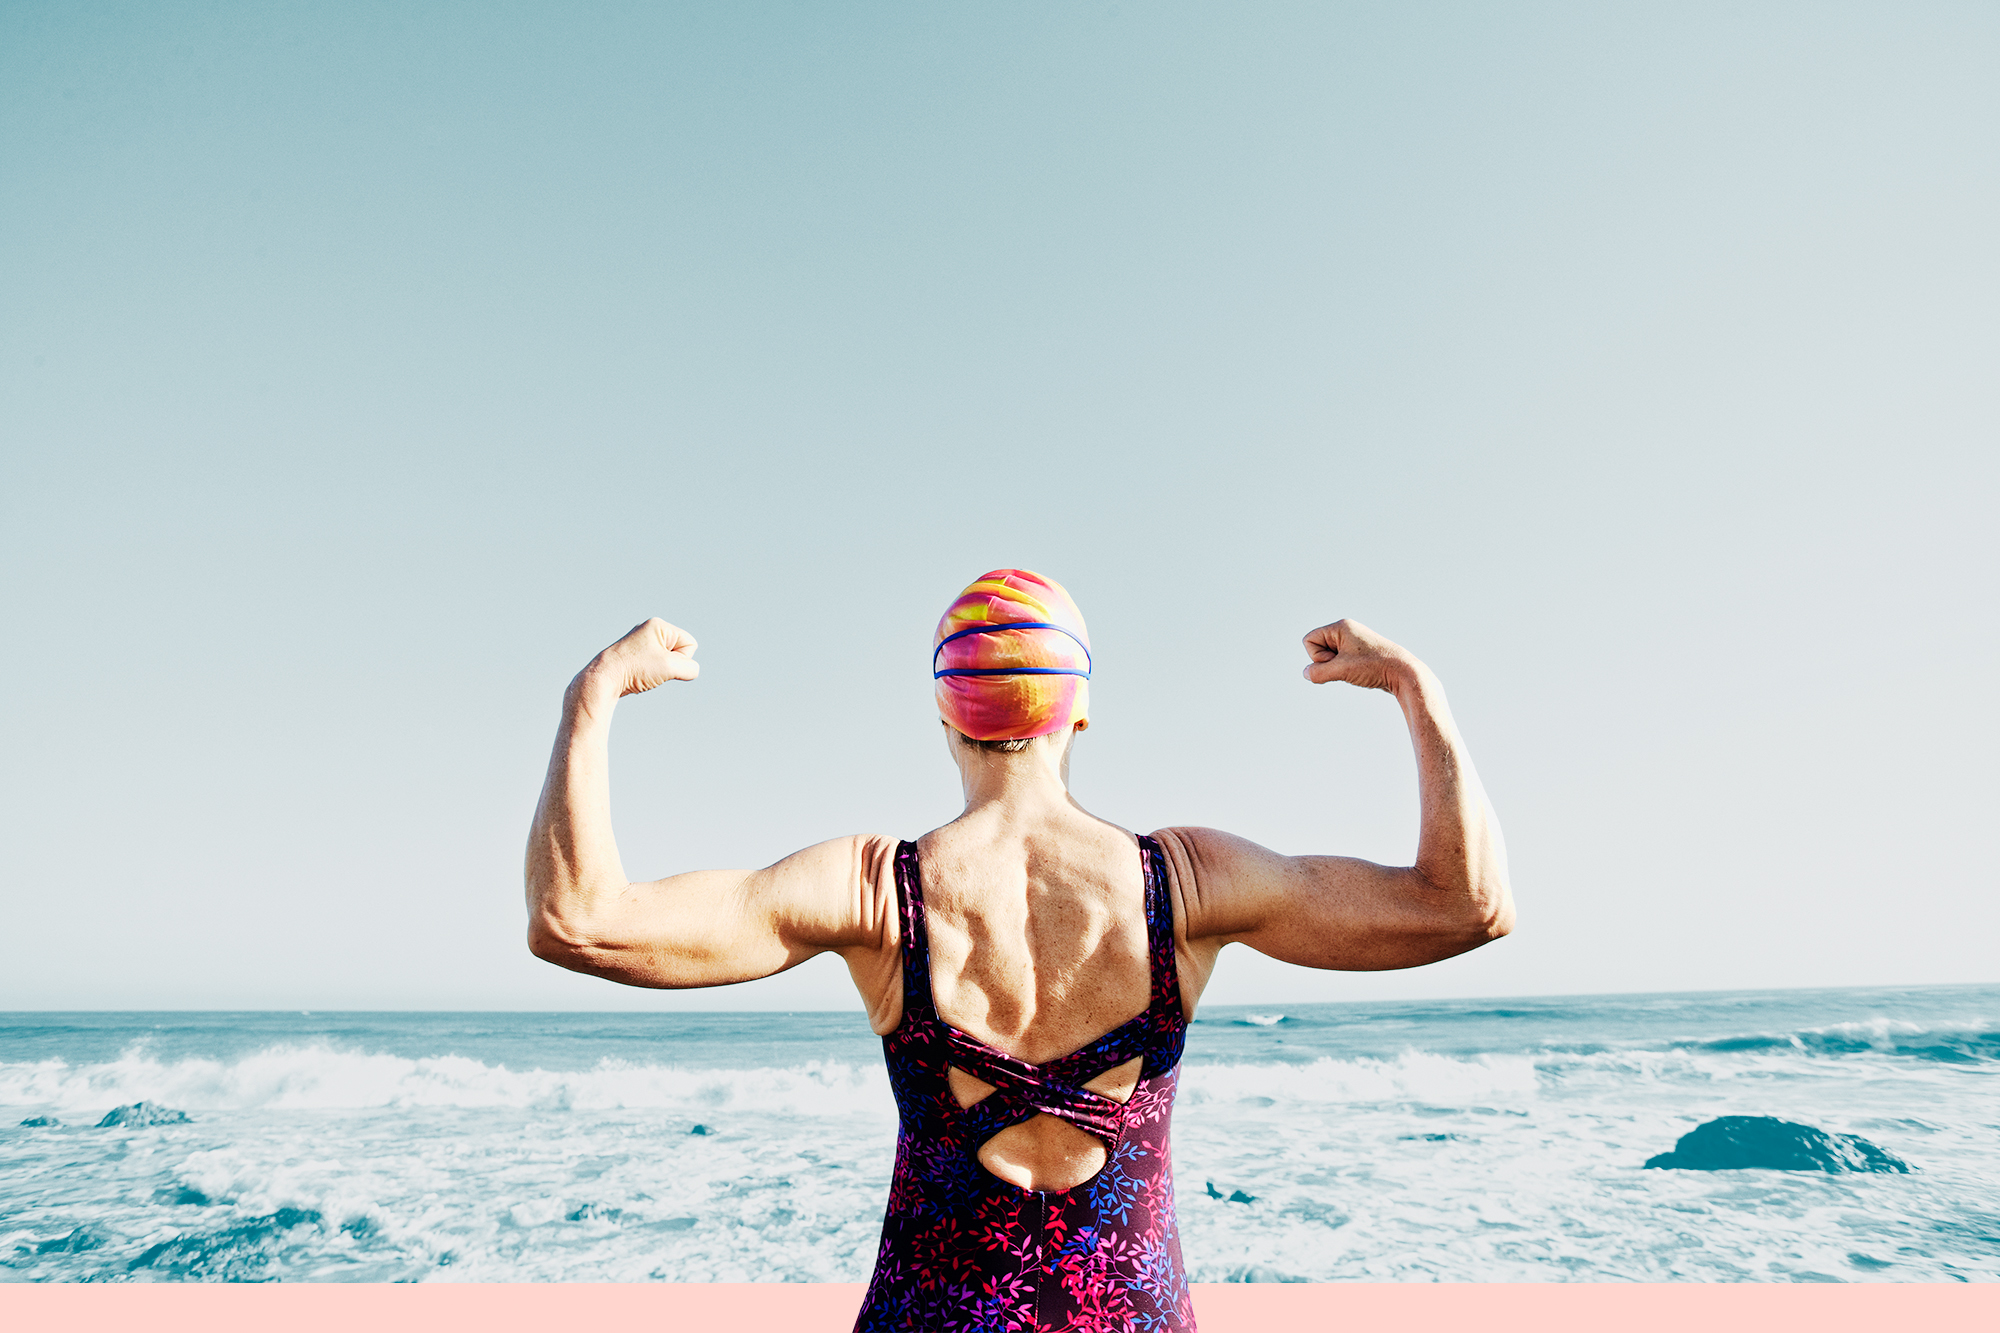 Older woman flexing her muscles on beach